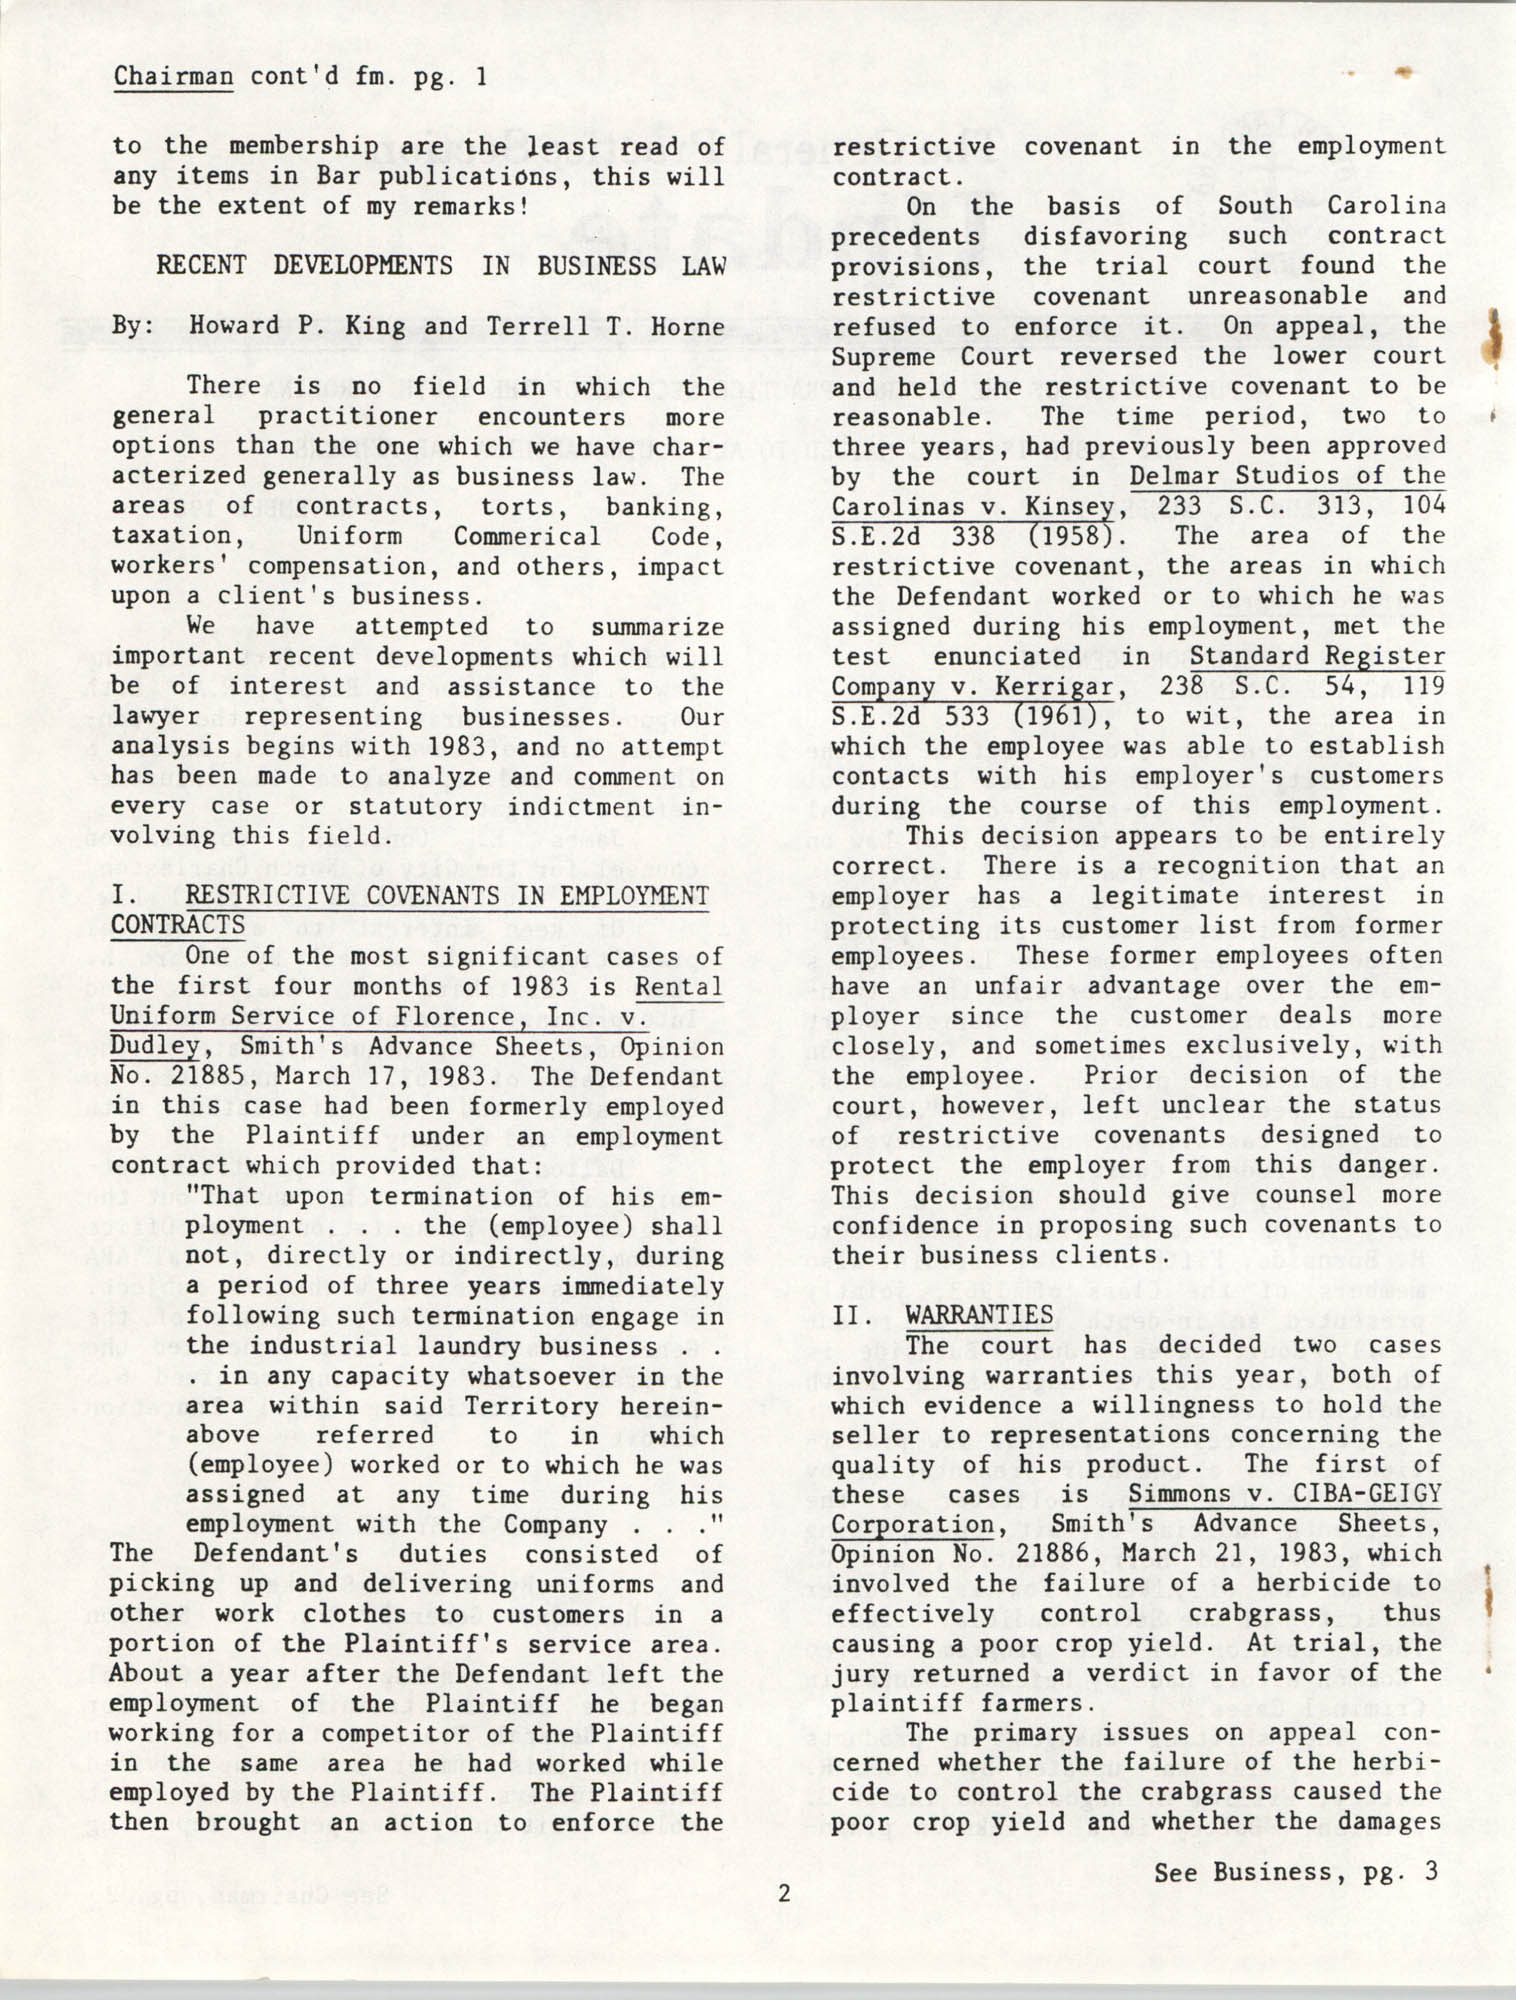 The General Practice Section Update, Vol. 1 No. 1, South Carolina Bar, November 1983, Page 2